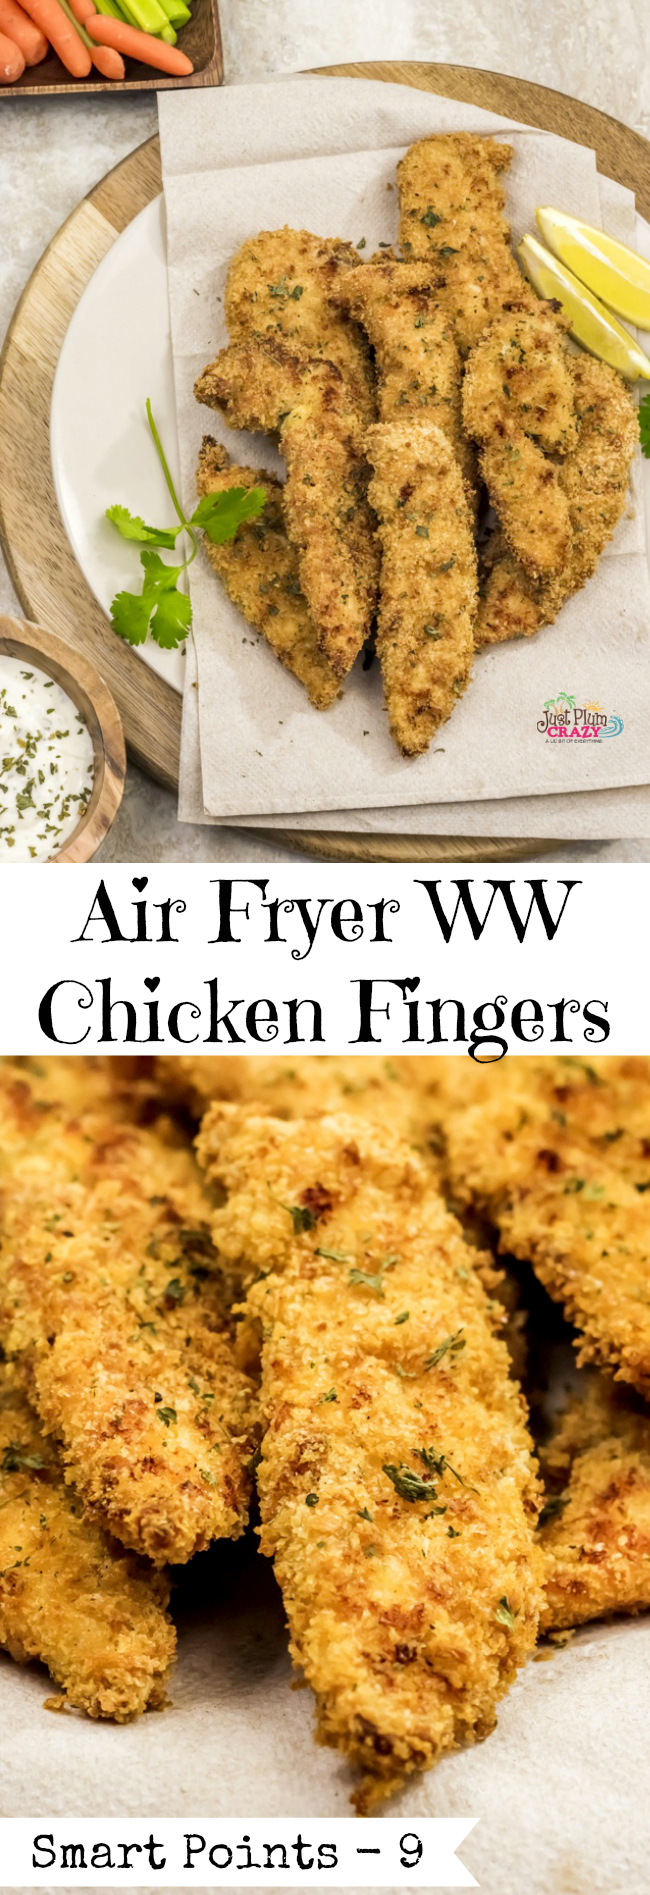 how to make chicken fingers in an air fryer